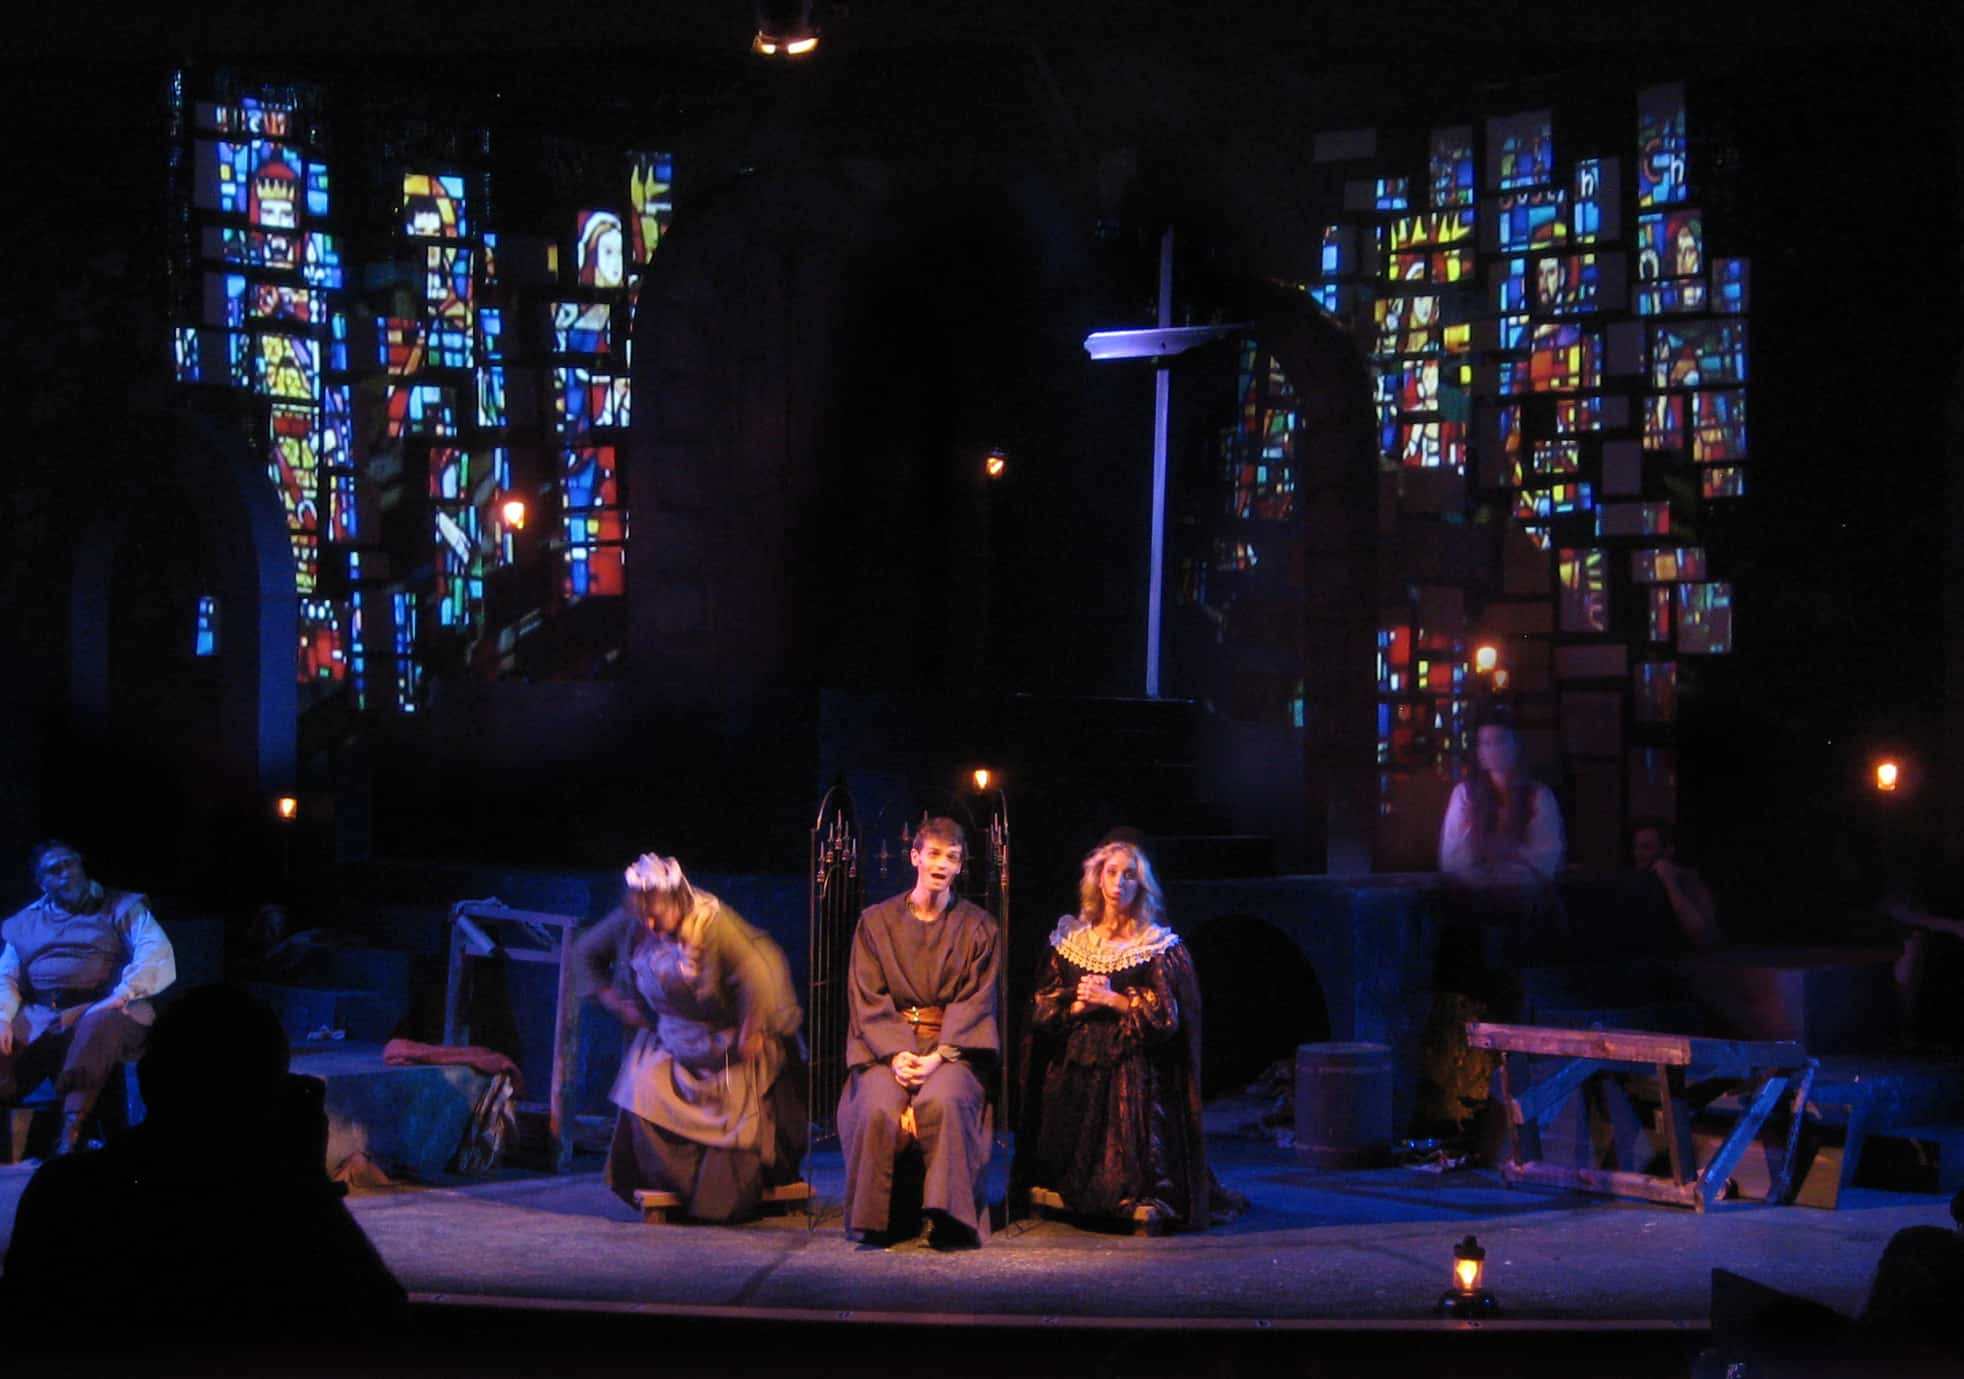 Man of La Mancha, Jean's Playhouse. Church windows are projected onto the stone bricks. A cross is erected from random sticks found in the dungeon.